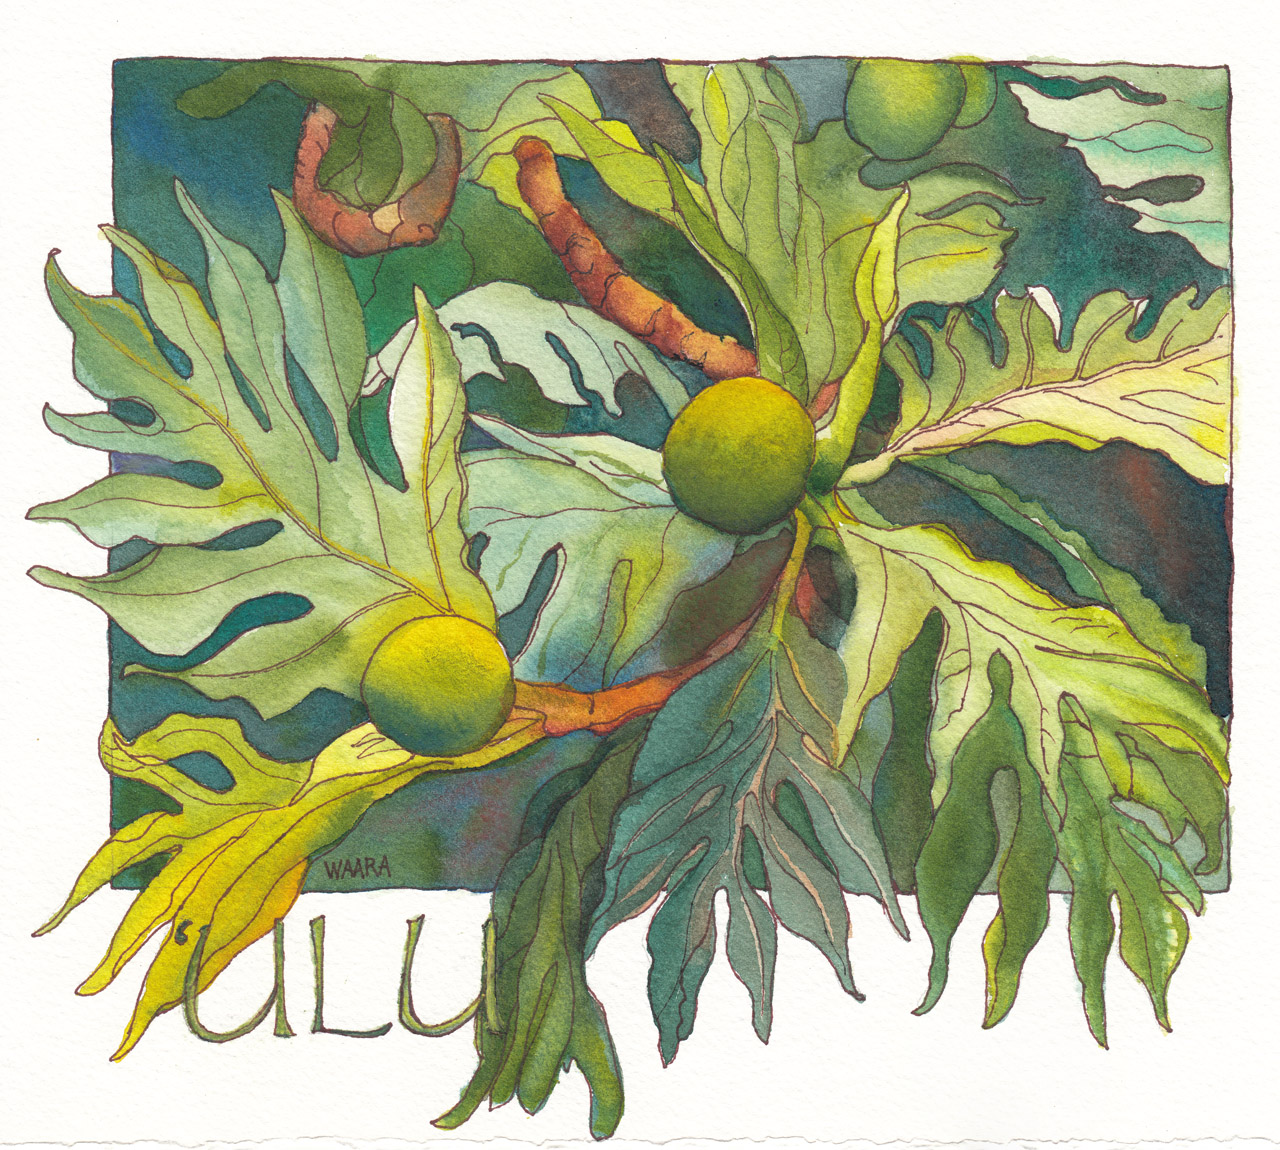 Ulu original watercolor painting by Maui artist Christine Waara